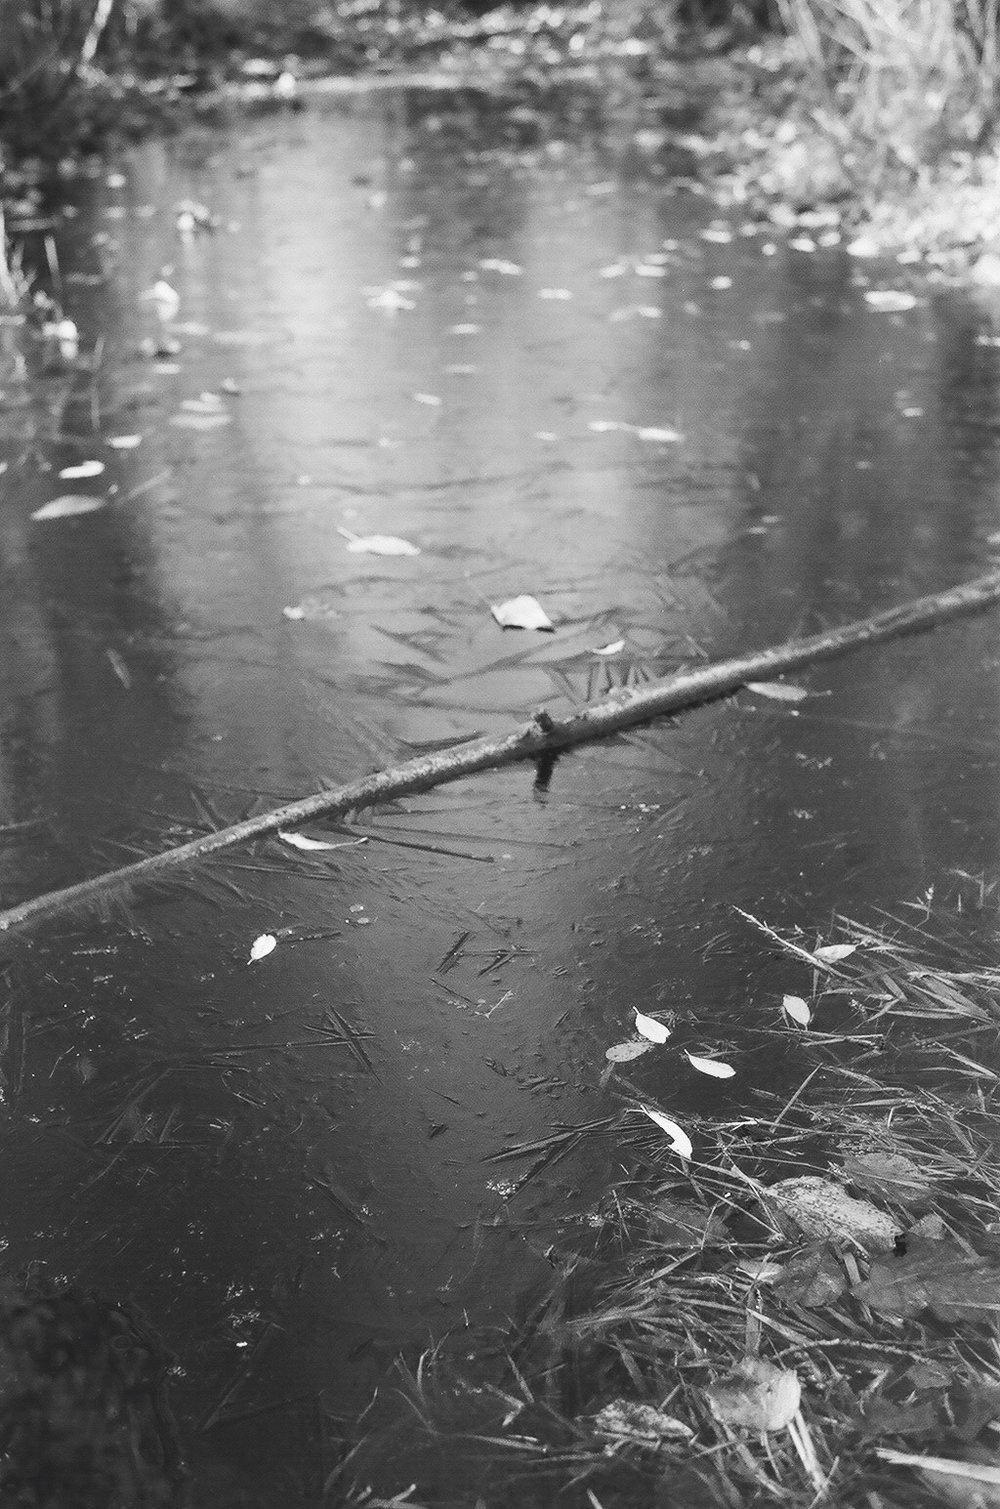 Branch Frozen in Pond   15.12 Ilford Delta 100